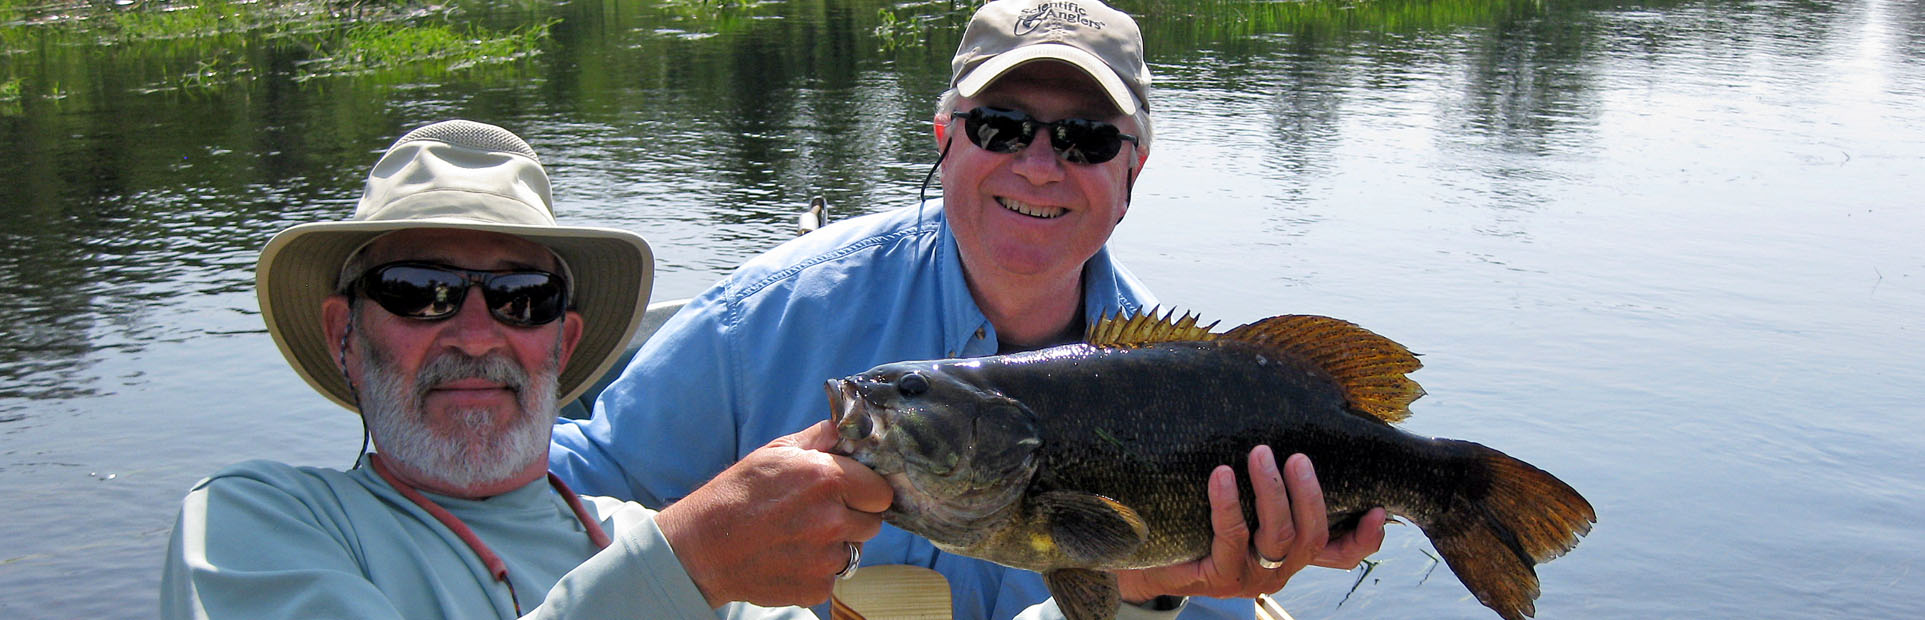 slide-bass-wisconsin-fly-fishing